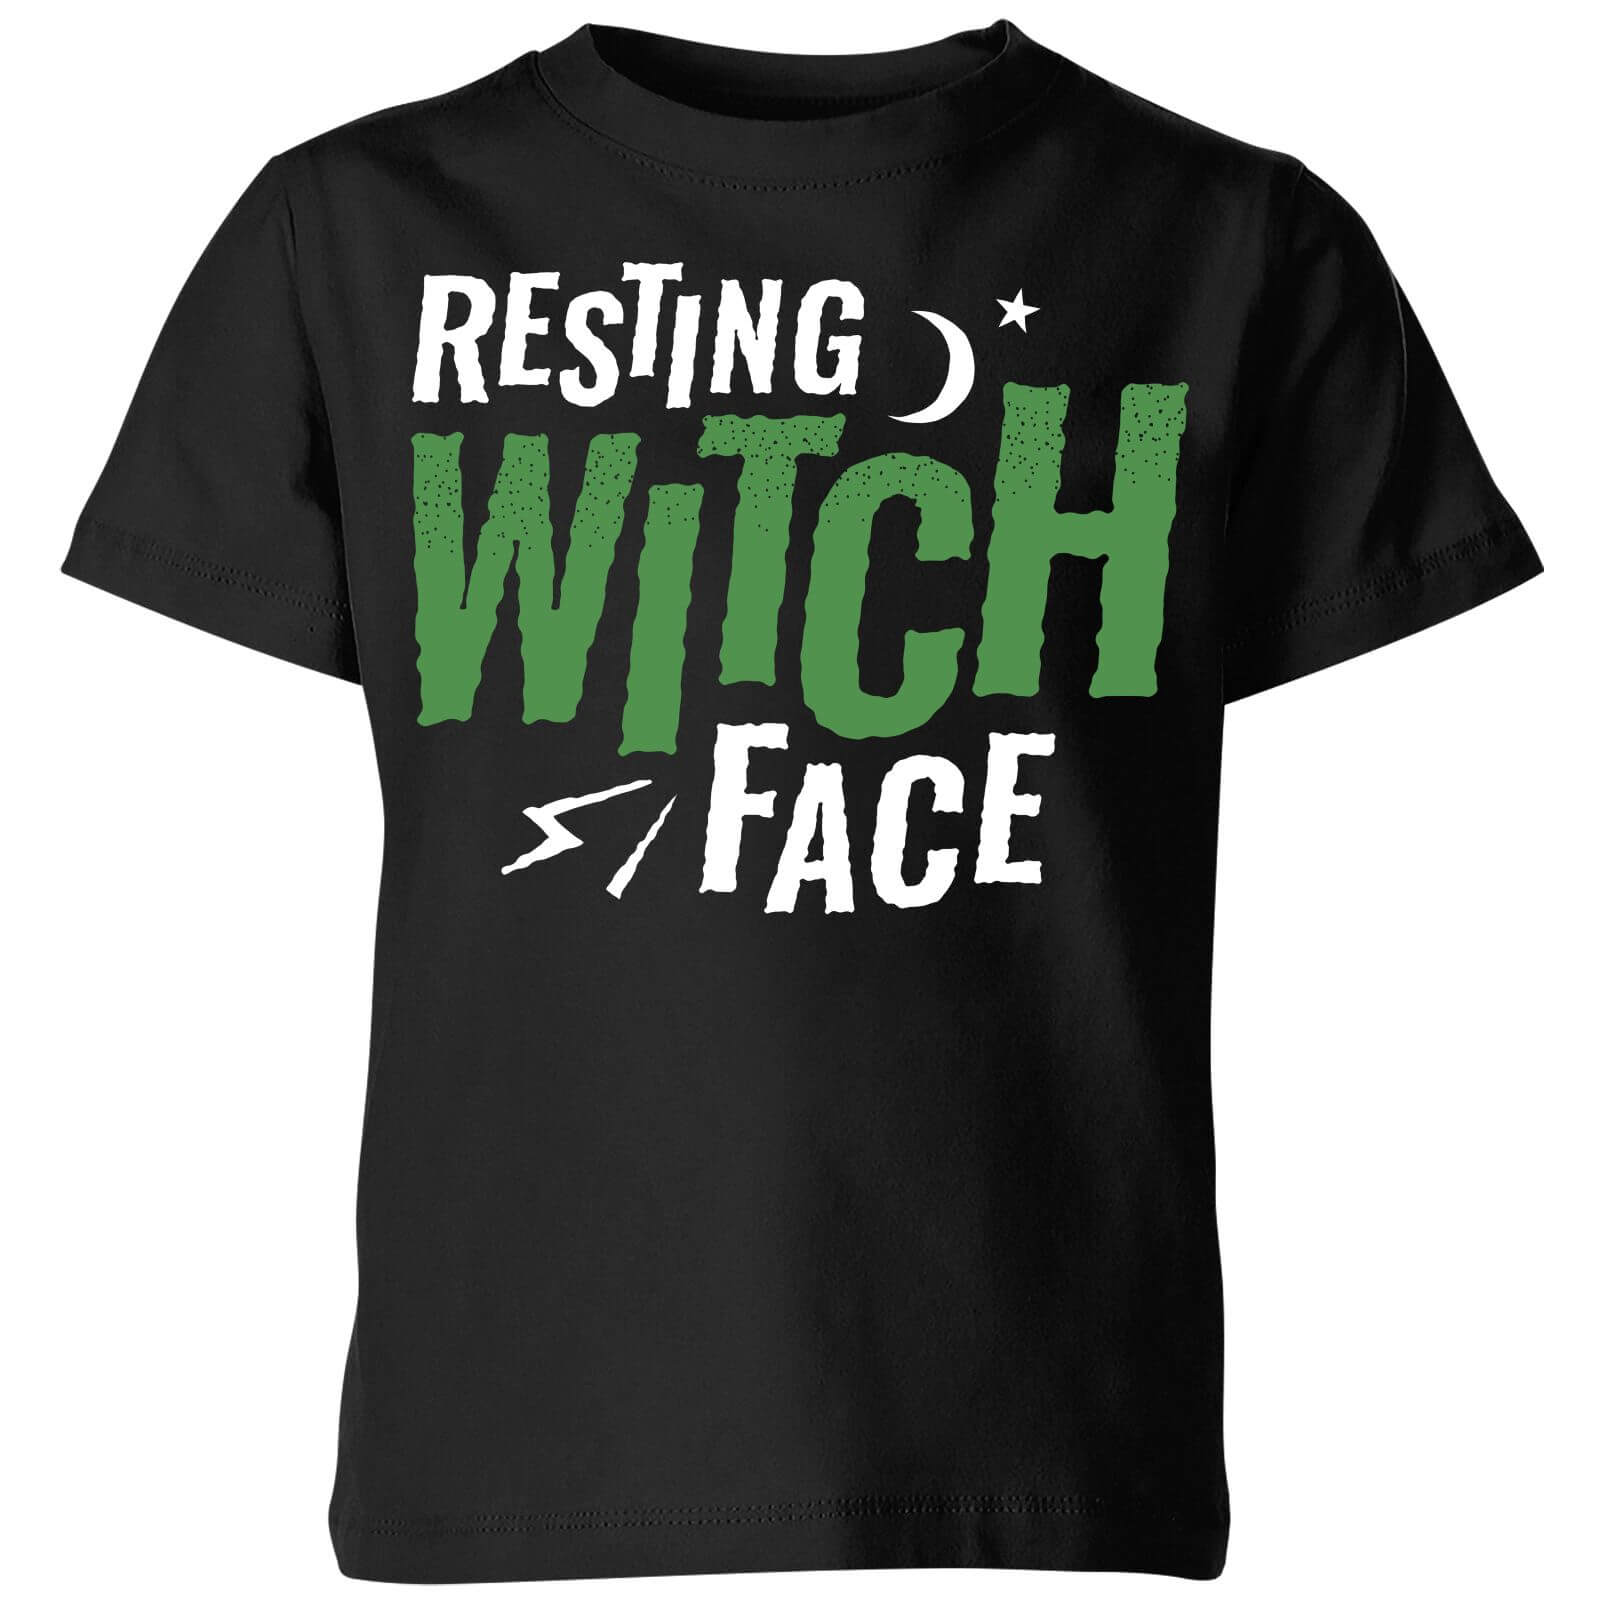 Resting Witch Face Kids